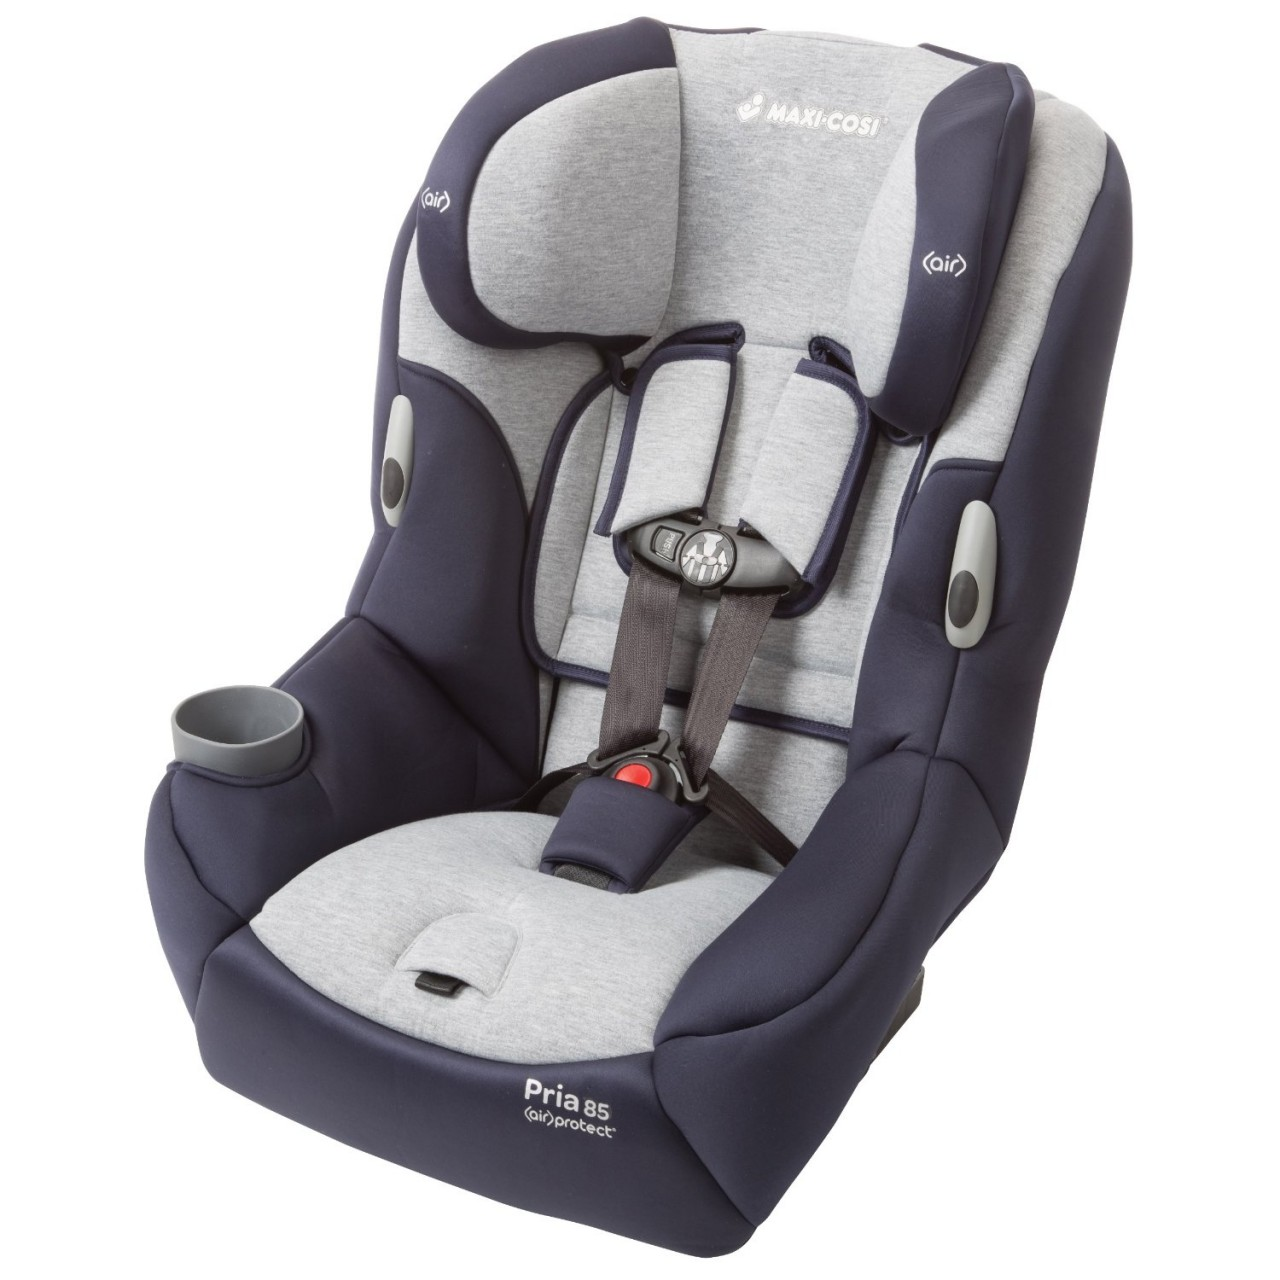 Maxi Cosi Baby Car Seat Weight Limit